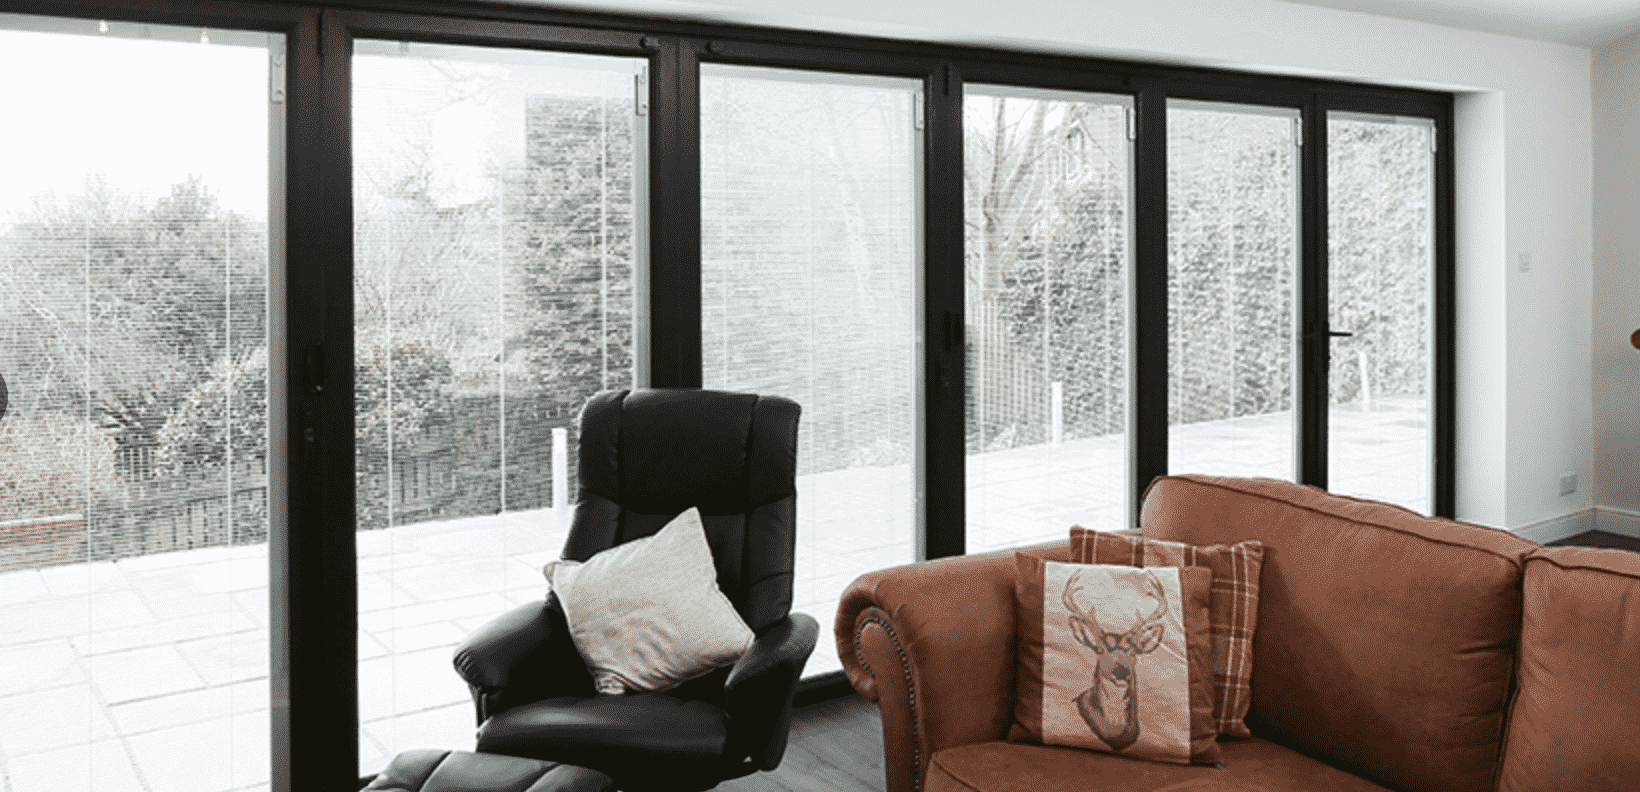 alumina bifolding door review